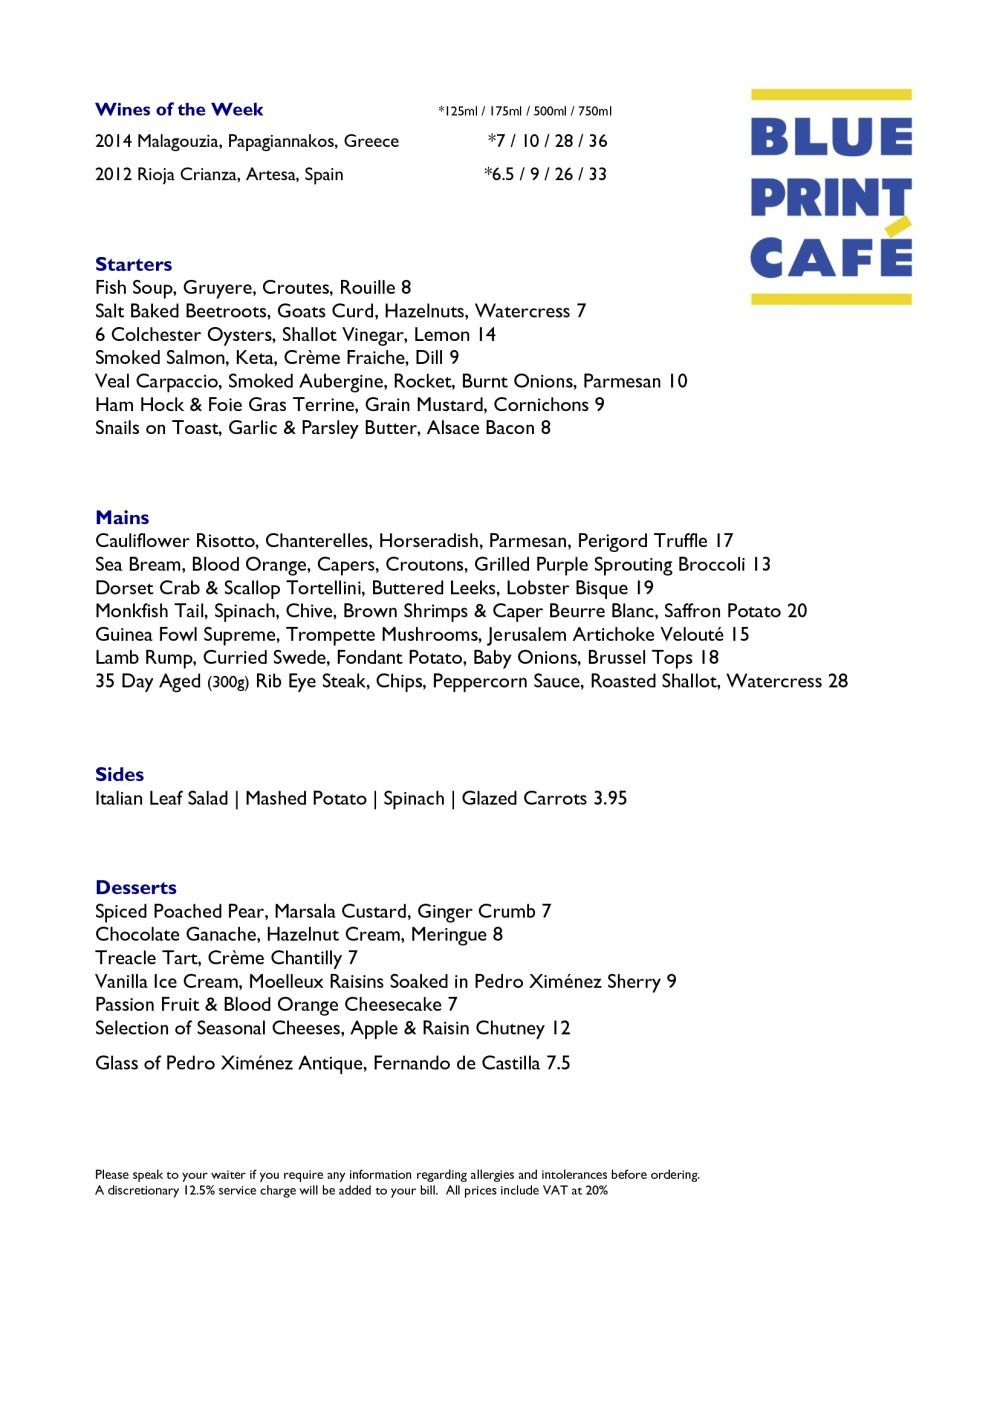 A la carte blueprint cafe menu dd london eatery pinterest a la carte blueprint cafe menu dd london malvernweather Gallery